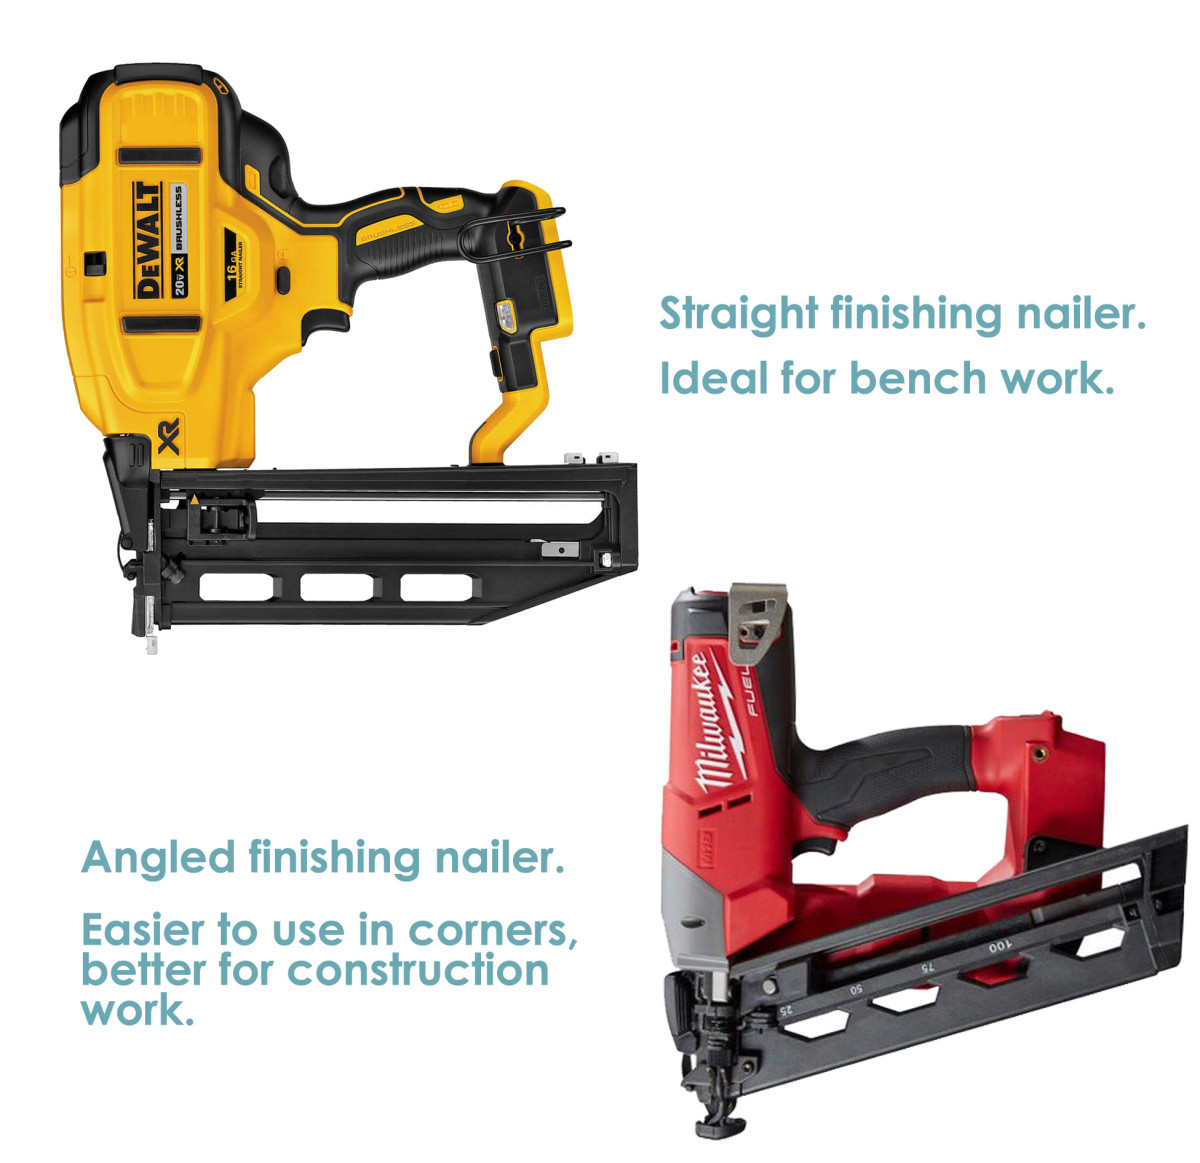 Angled versus straight finish nail guns.